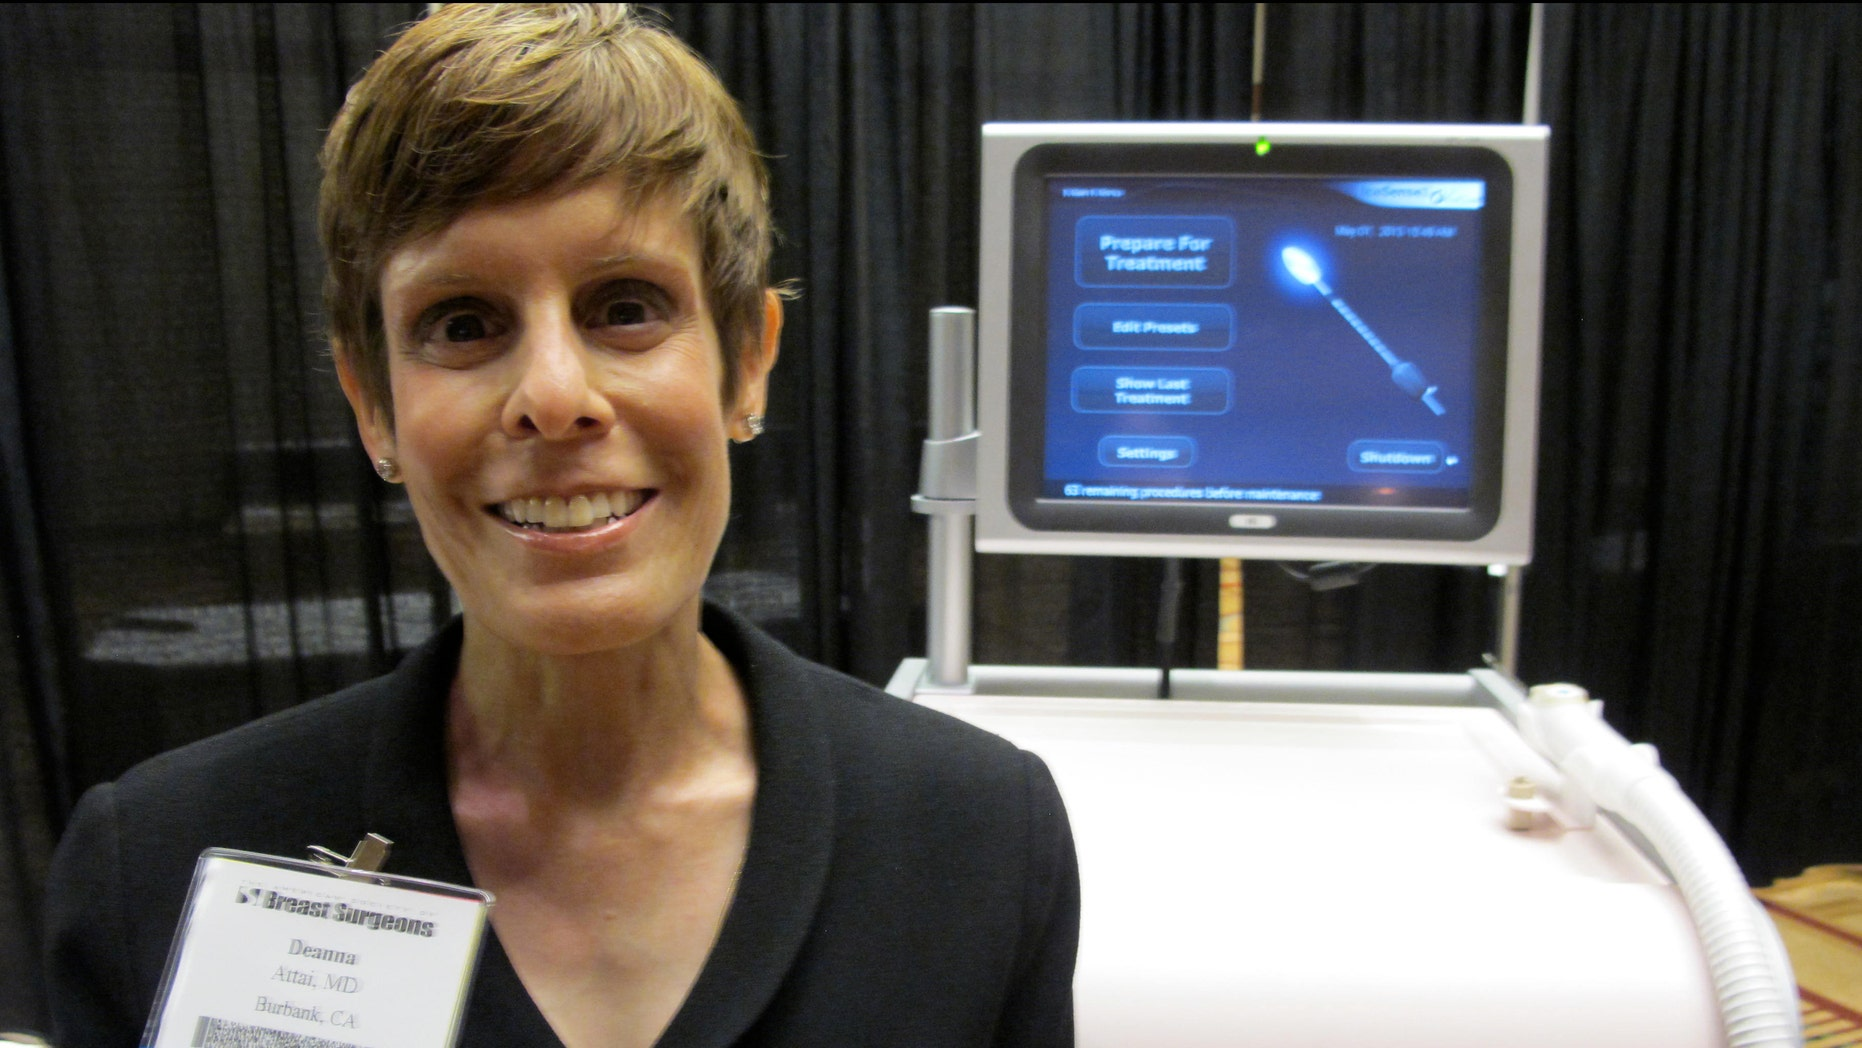 Dr. Deanna Attai, who is on the board of directors for American Society of Breast Surgeons, stands in front of cryoablation machine at the American Society of Breast Surgeons conference on May 1, 2013 in Chicago.